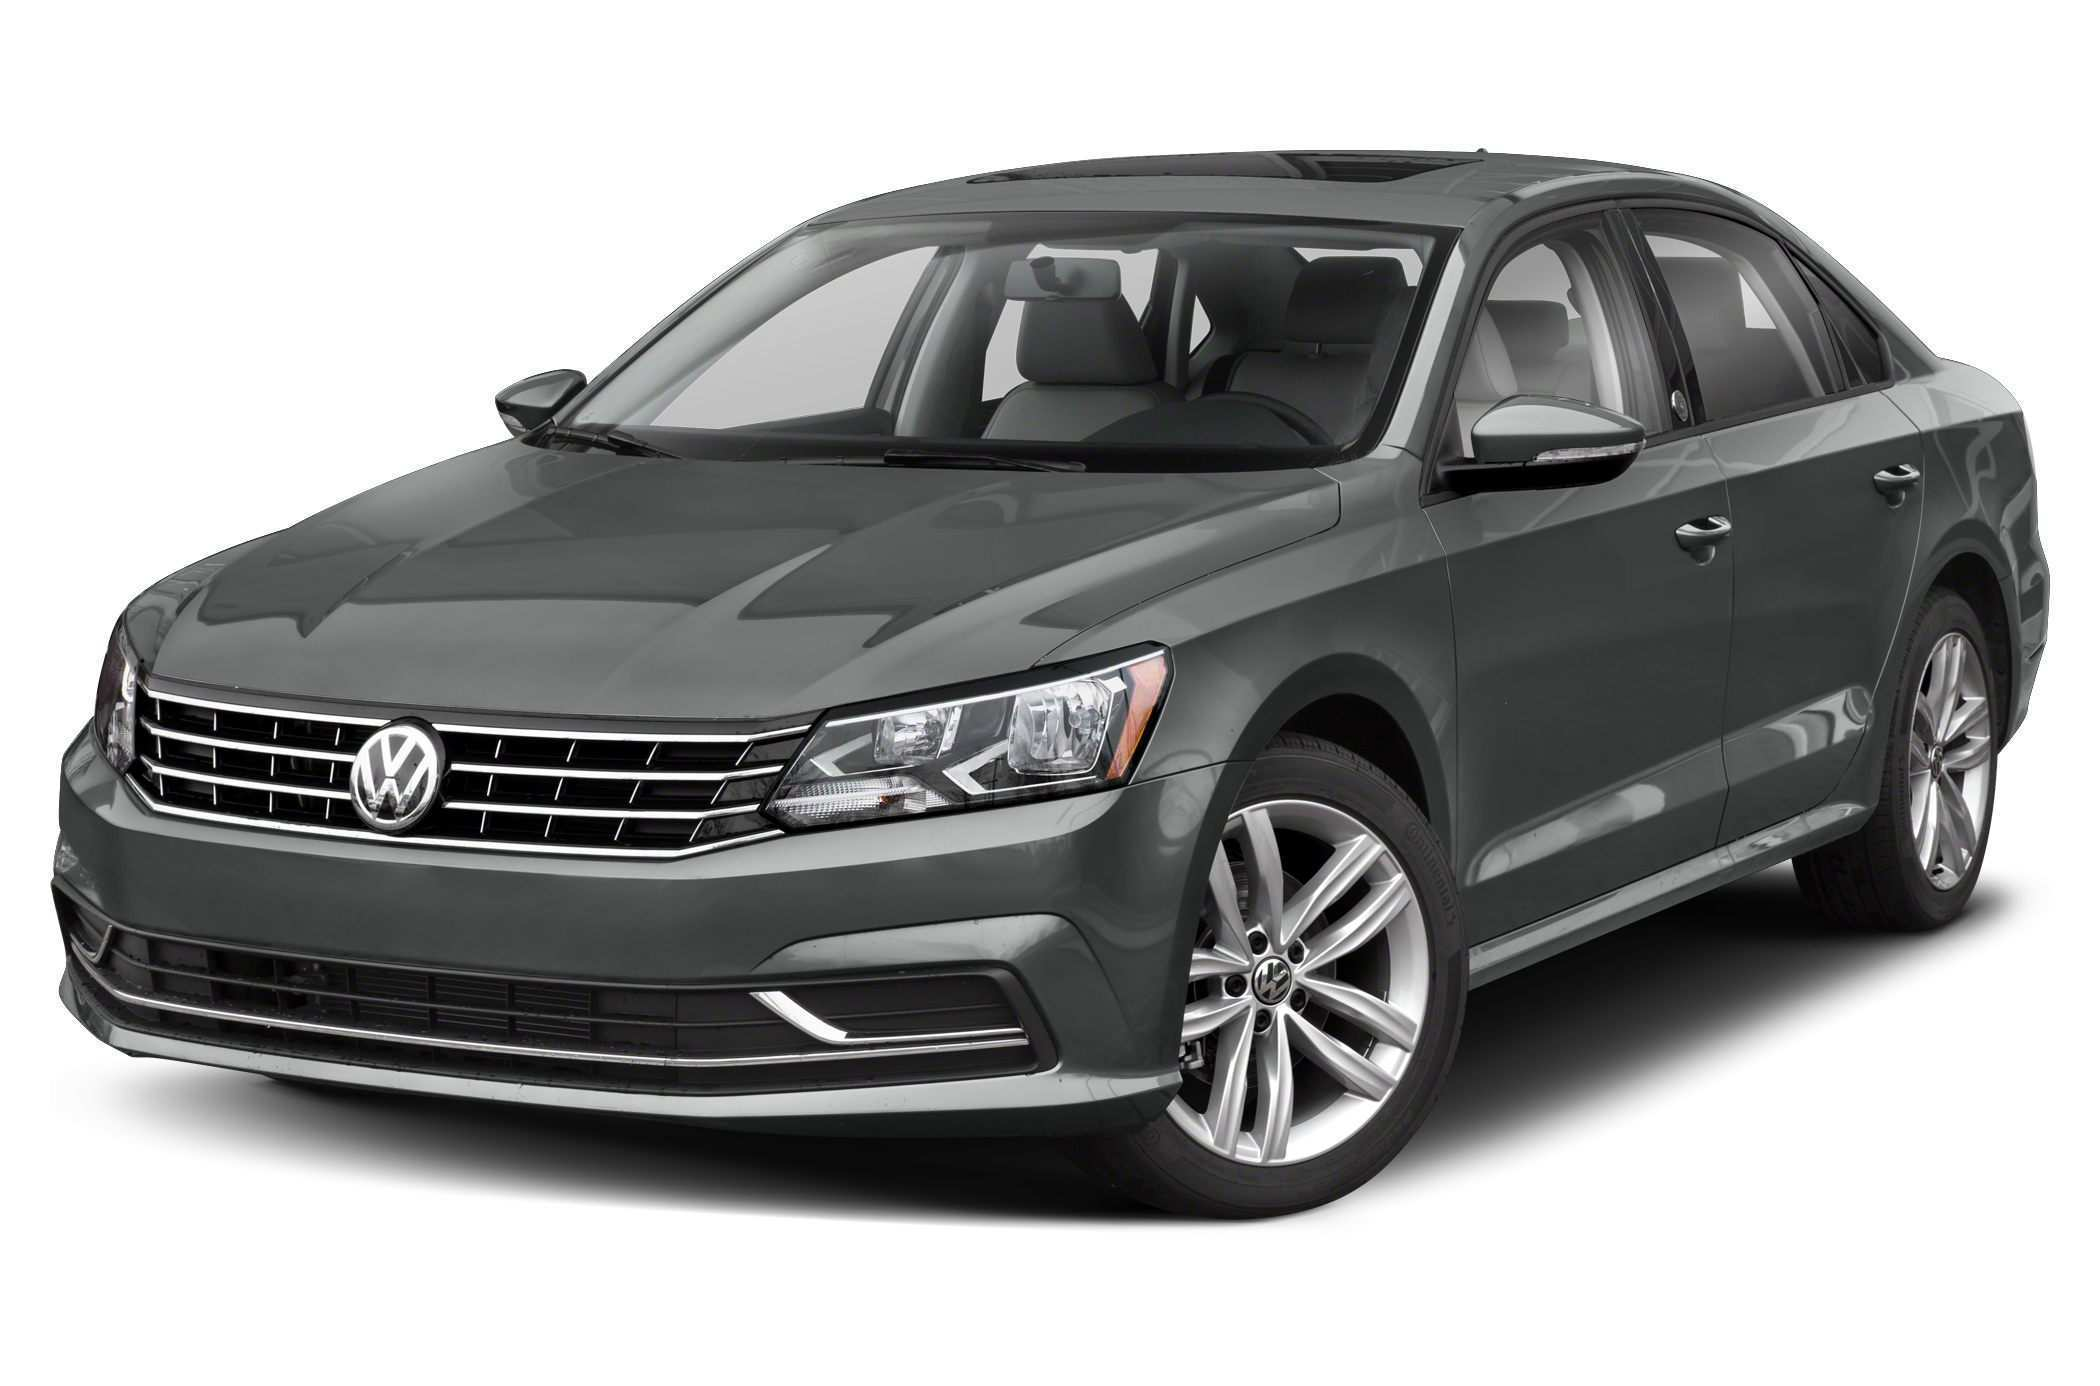 66 The Best Volkswagen Passat Gt 2019 Exterior Prices by Best Volkswagen Passat Gt 2019 Exterior